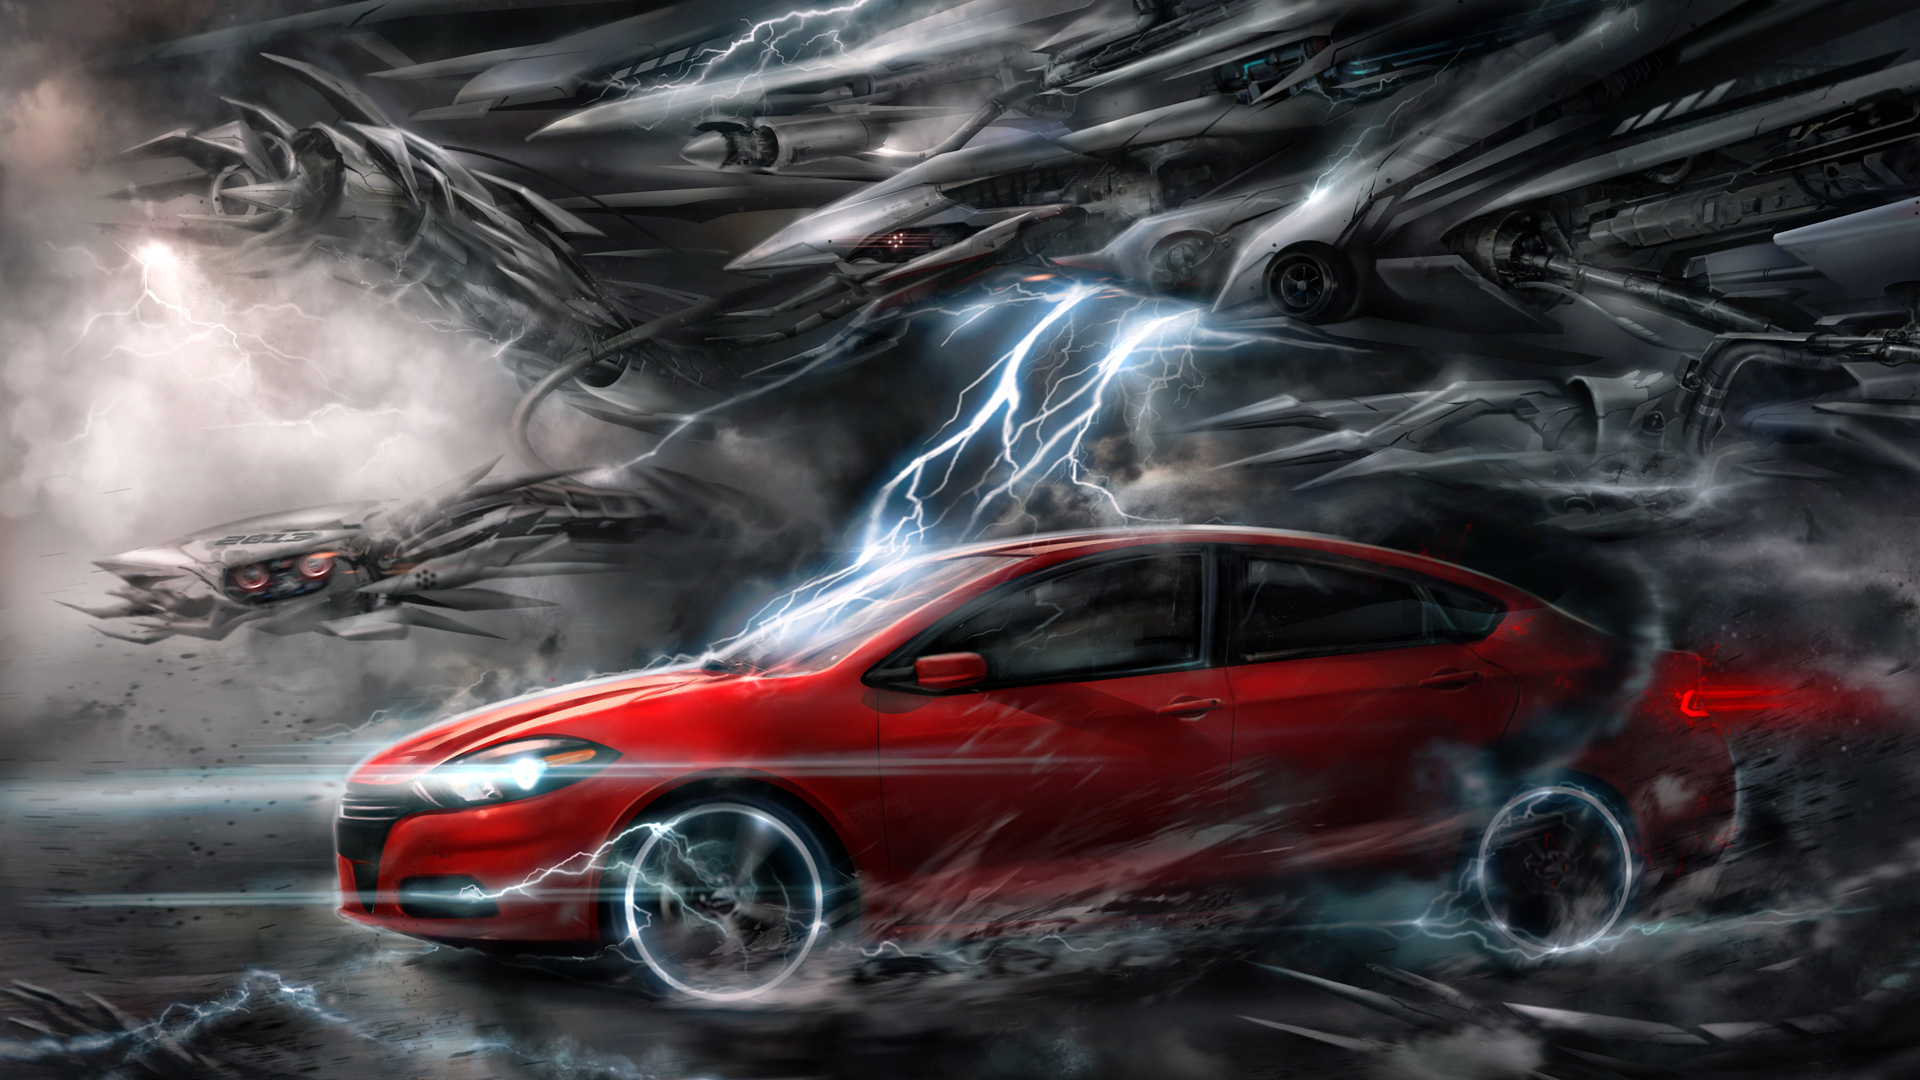 Homepage Auto and Vehicules Red car wallpaper 1920x1080 1 1920x1080